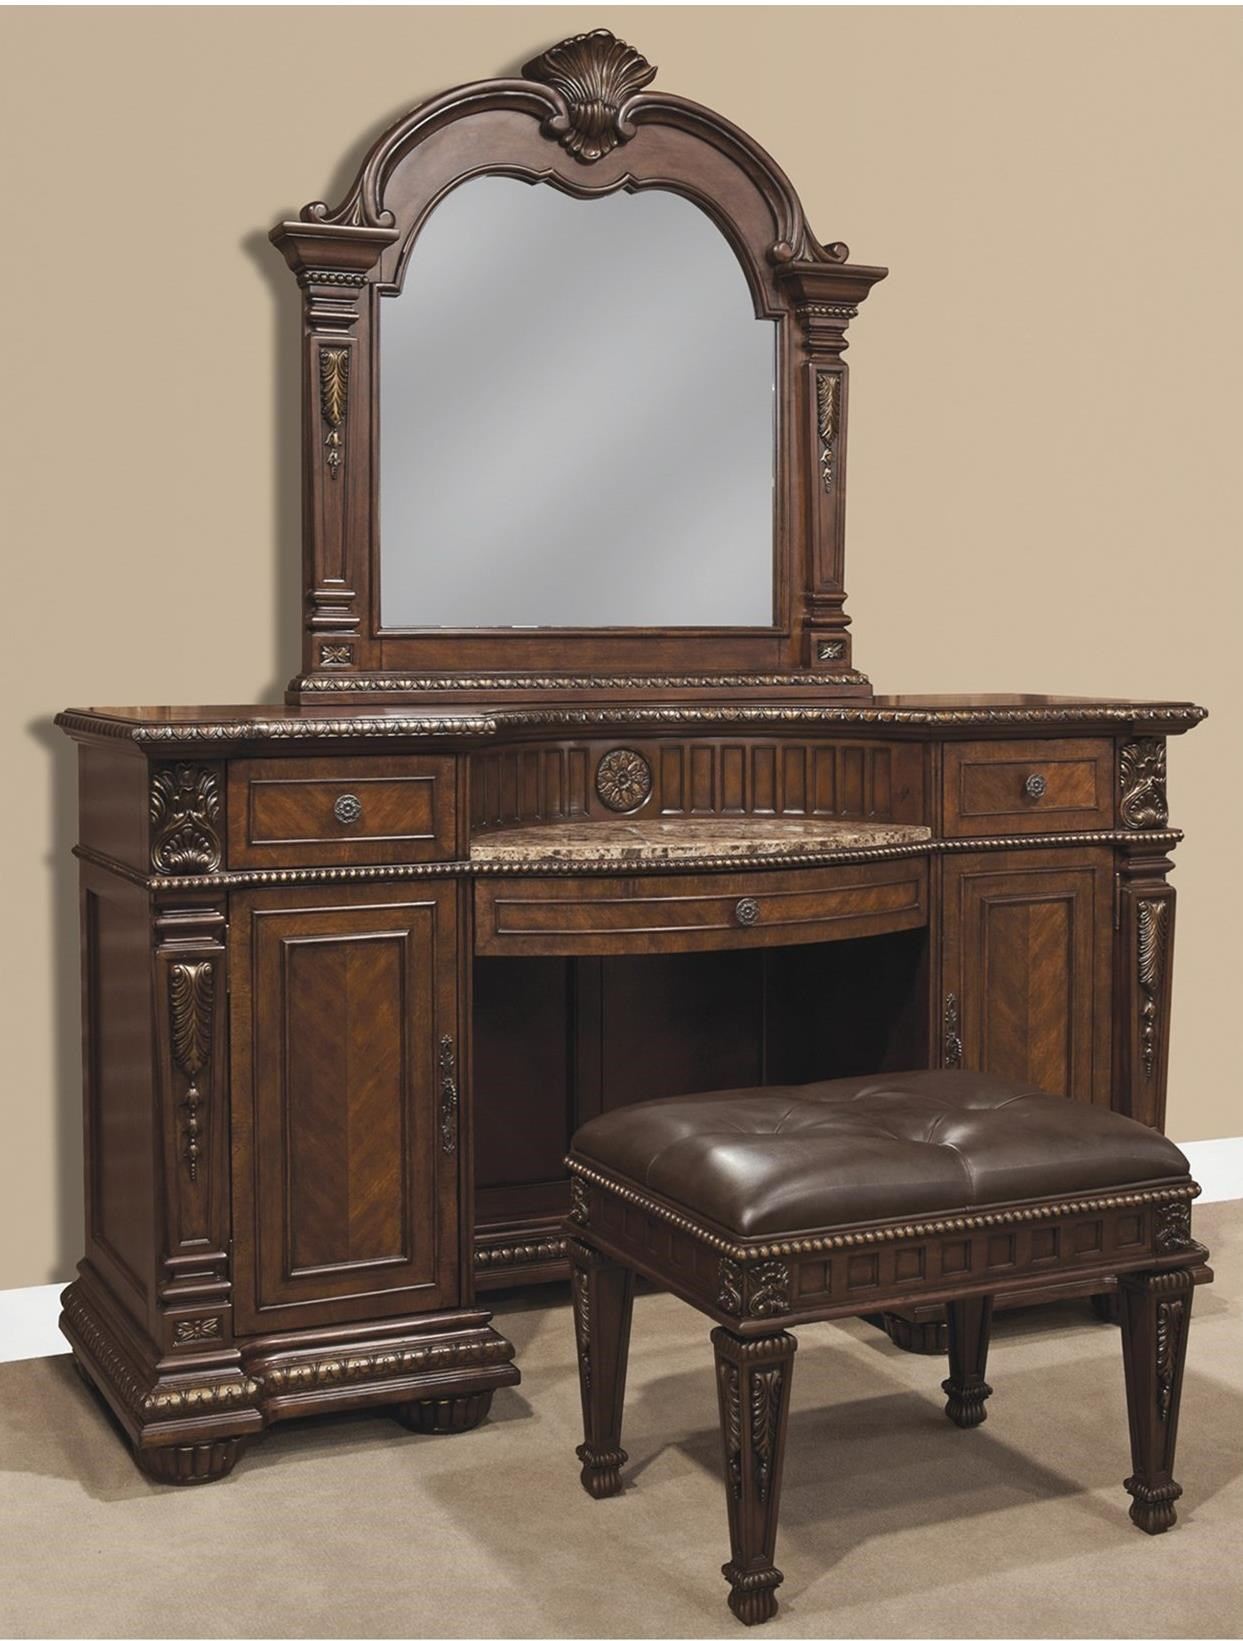 Holland house coventry vanity bench set with mirror - Coventry bedroom furniture collection ...